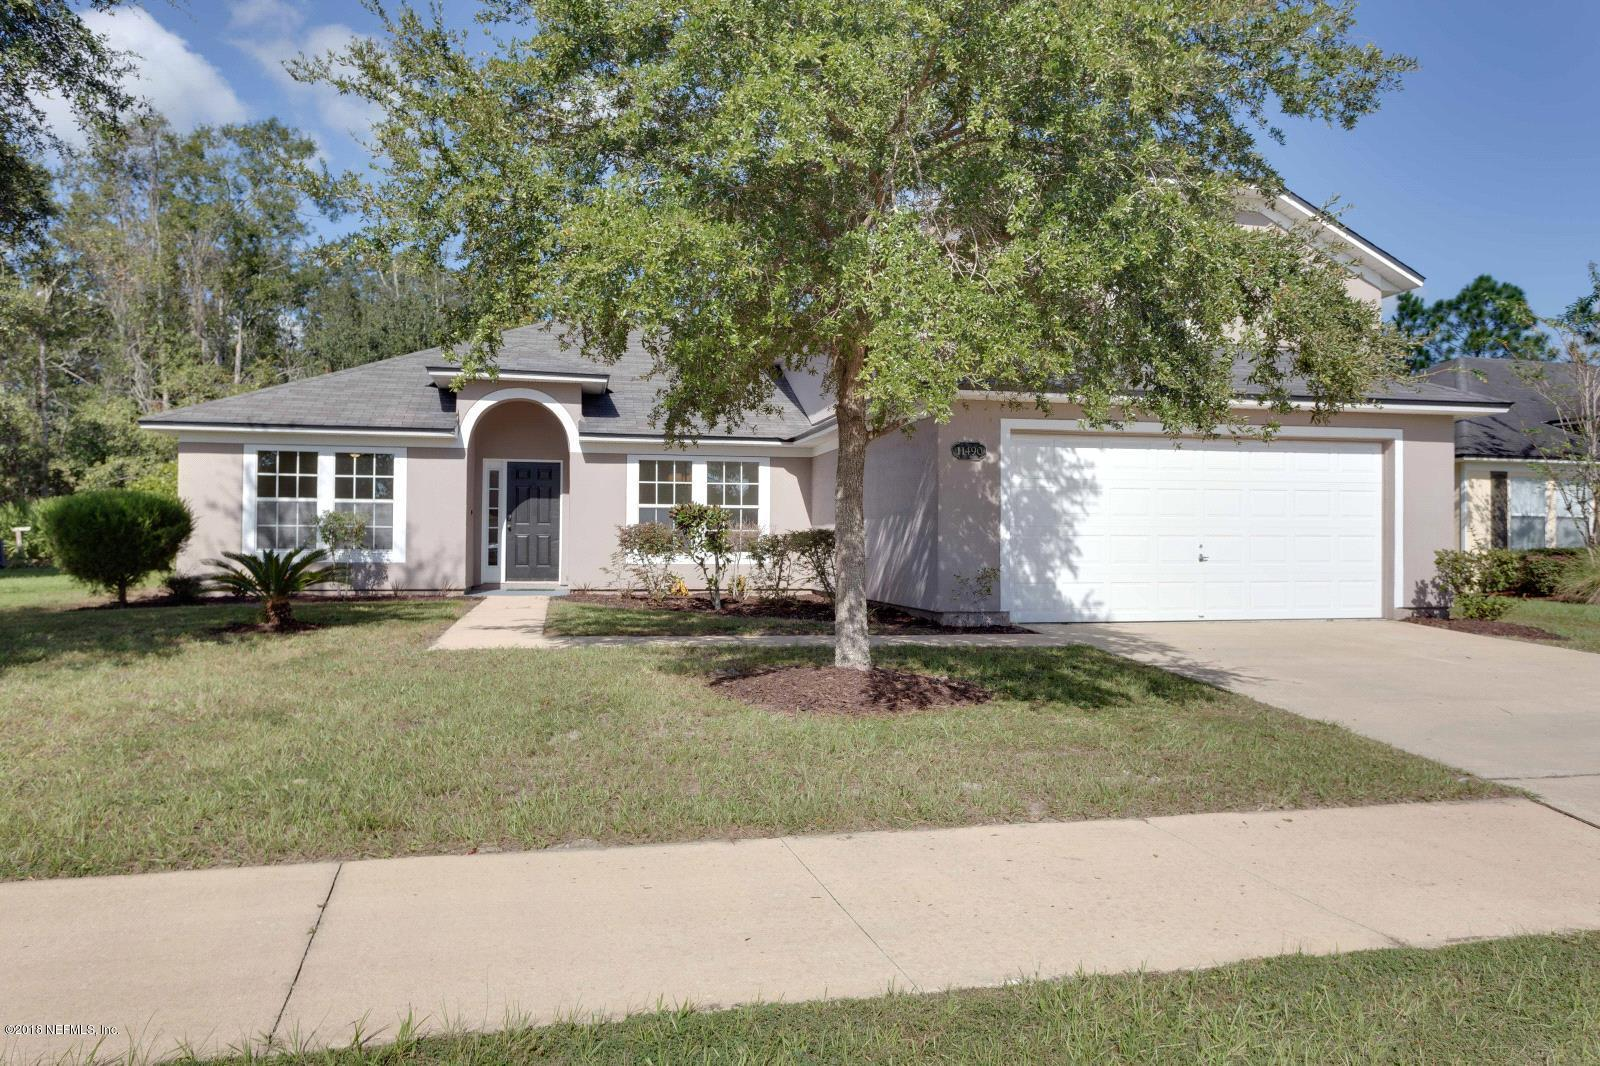 11490 TORI, JACKSONVILLE, FLORIDA 32218, 3 Bedrooms Bedrooms, ,2 BathroomsBathrooms,Residential - single family,For sale,TORI,965290